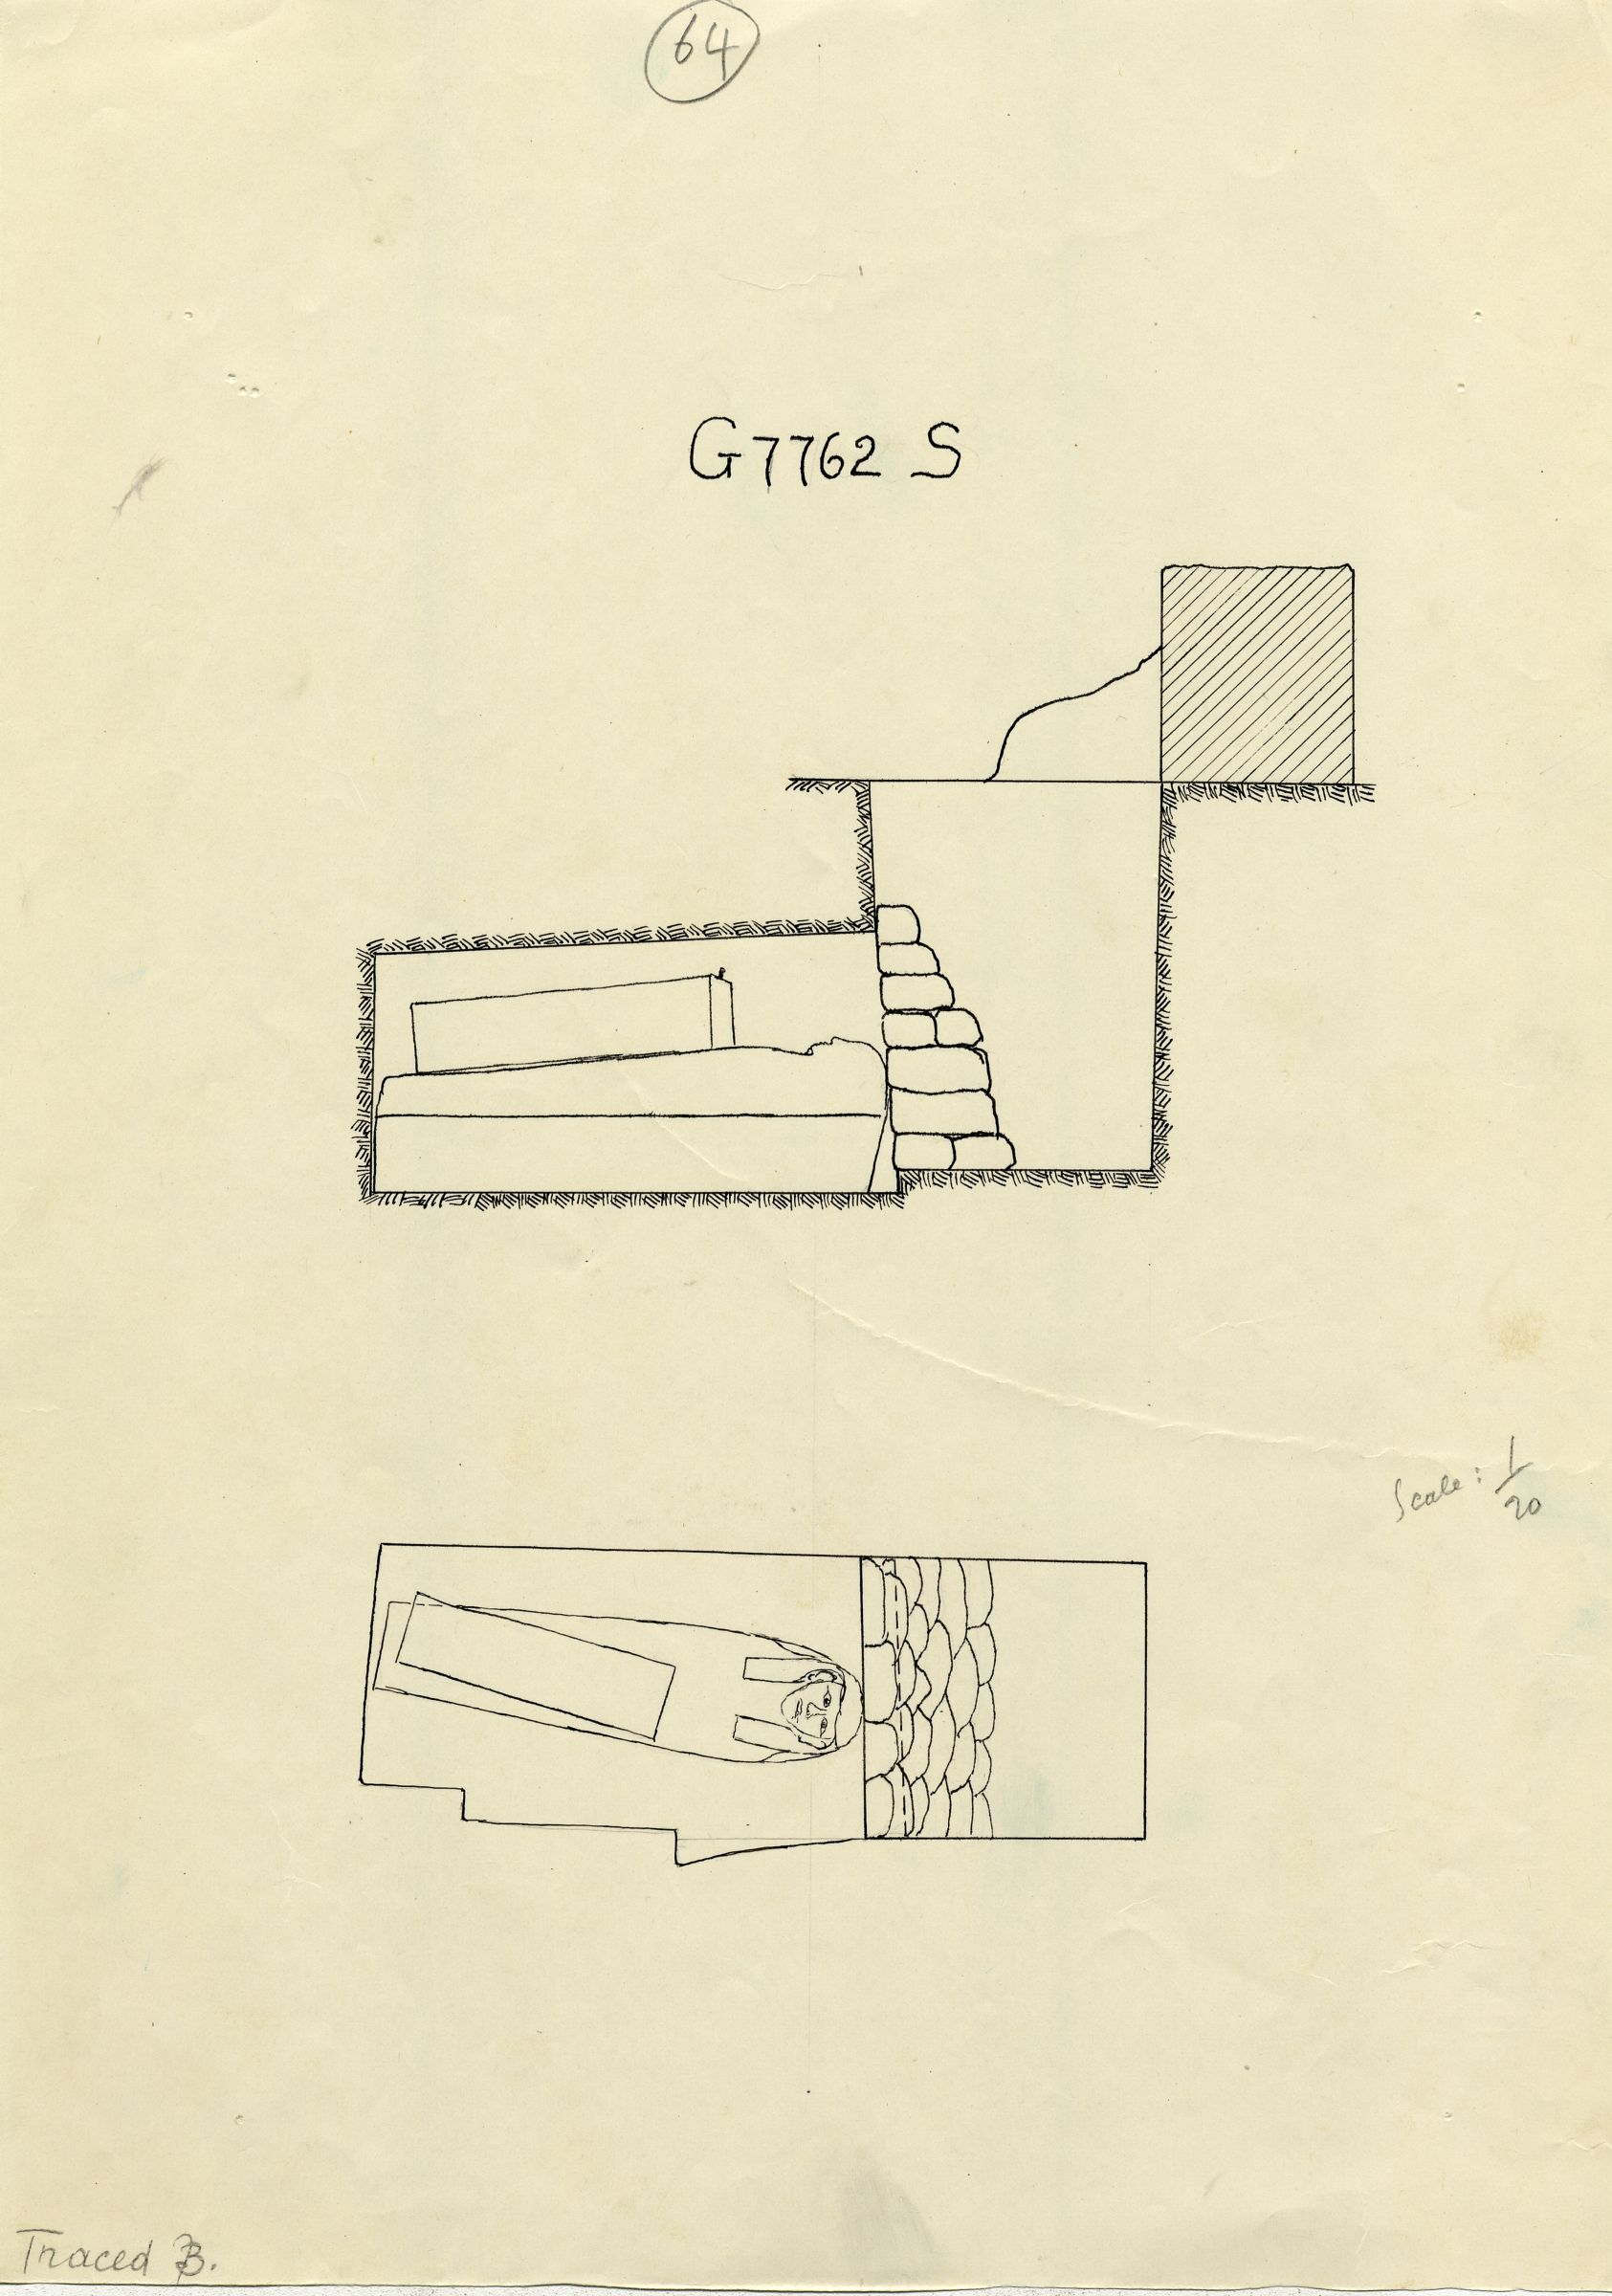 Maps and plans: G 7762, Shaft S